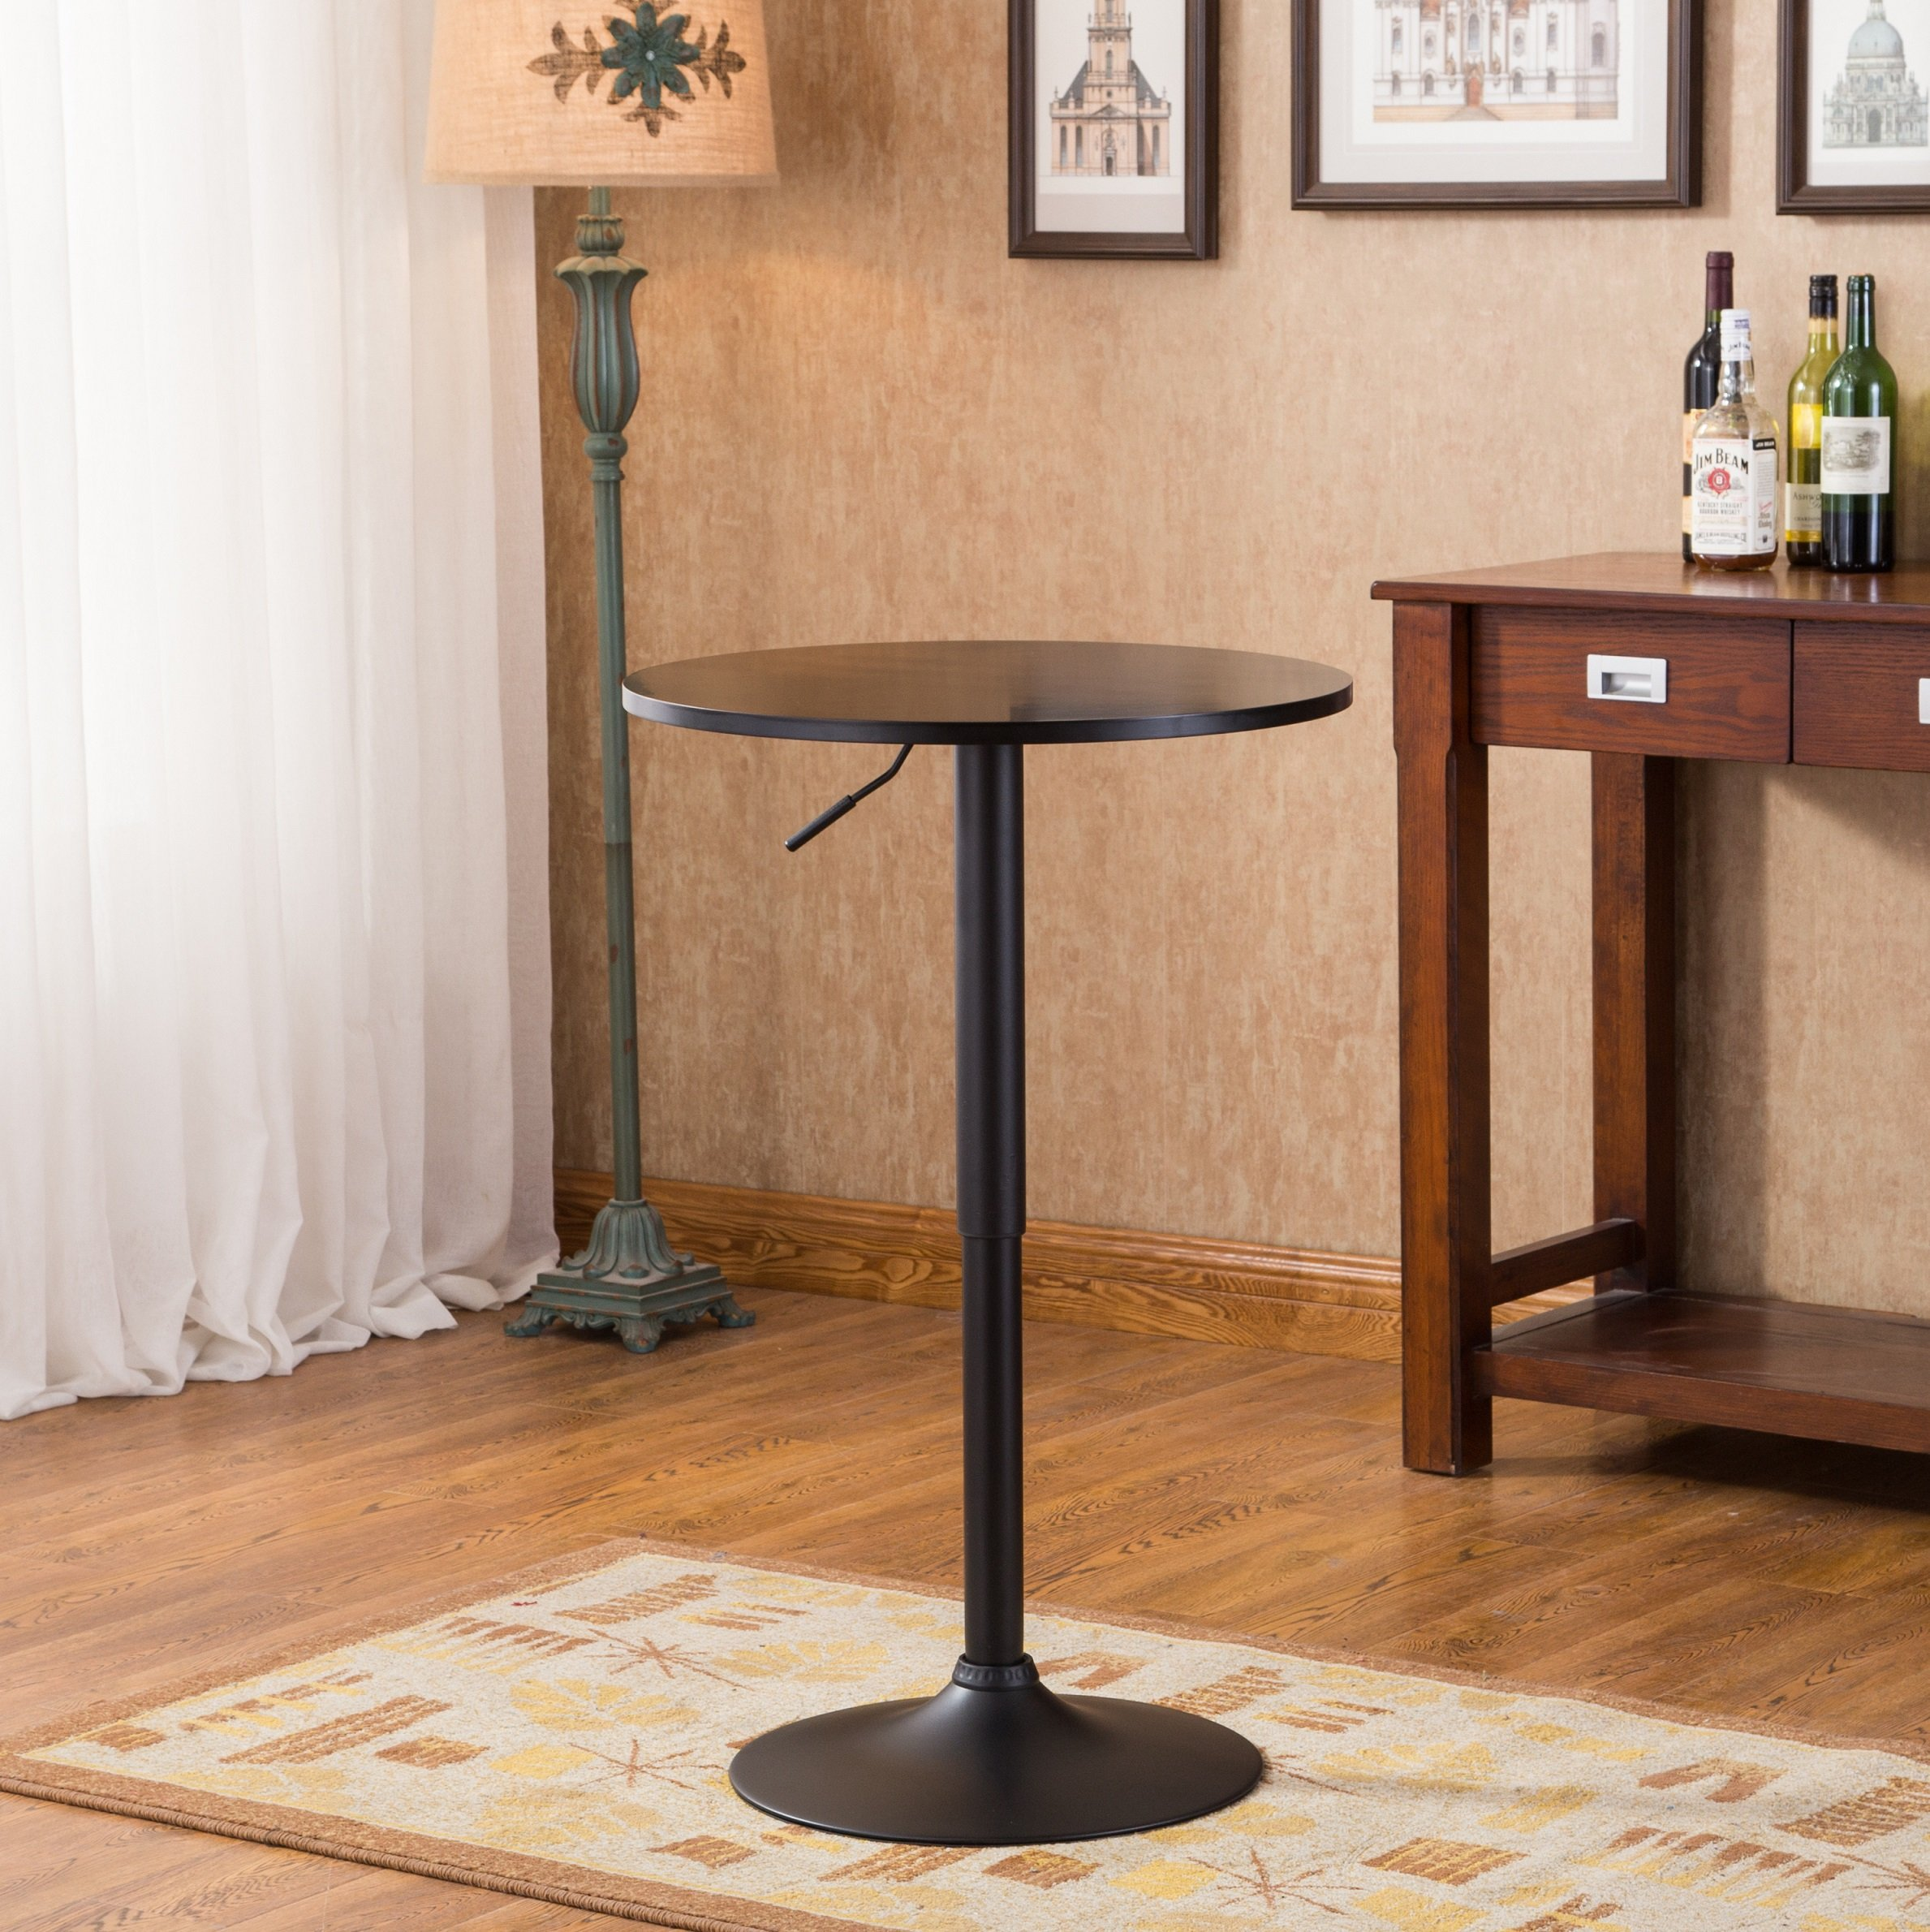 Roundhill Furniture Belham Black Round Top Adjustable Height with Black Leg And Base Metal Bar Table